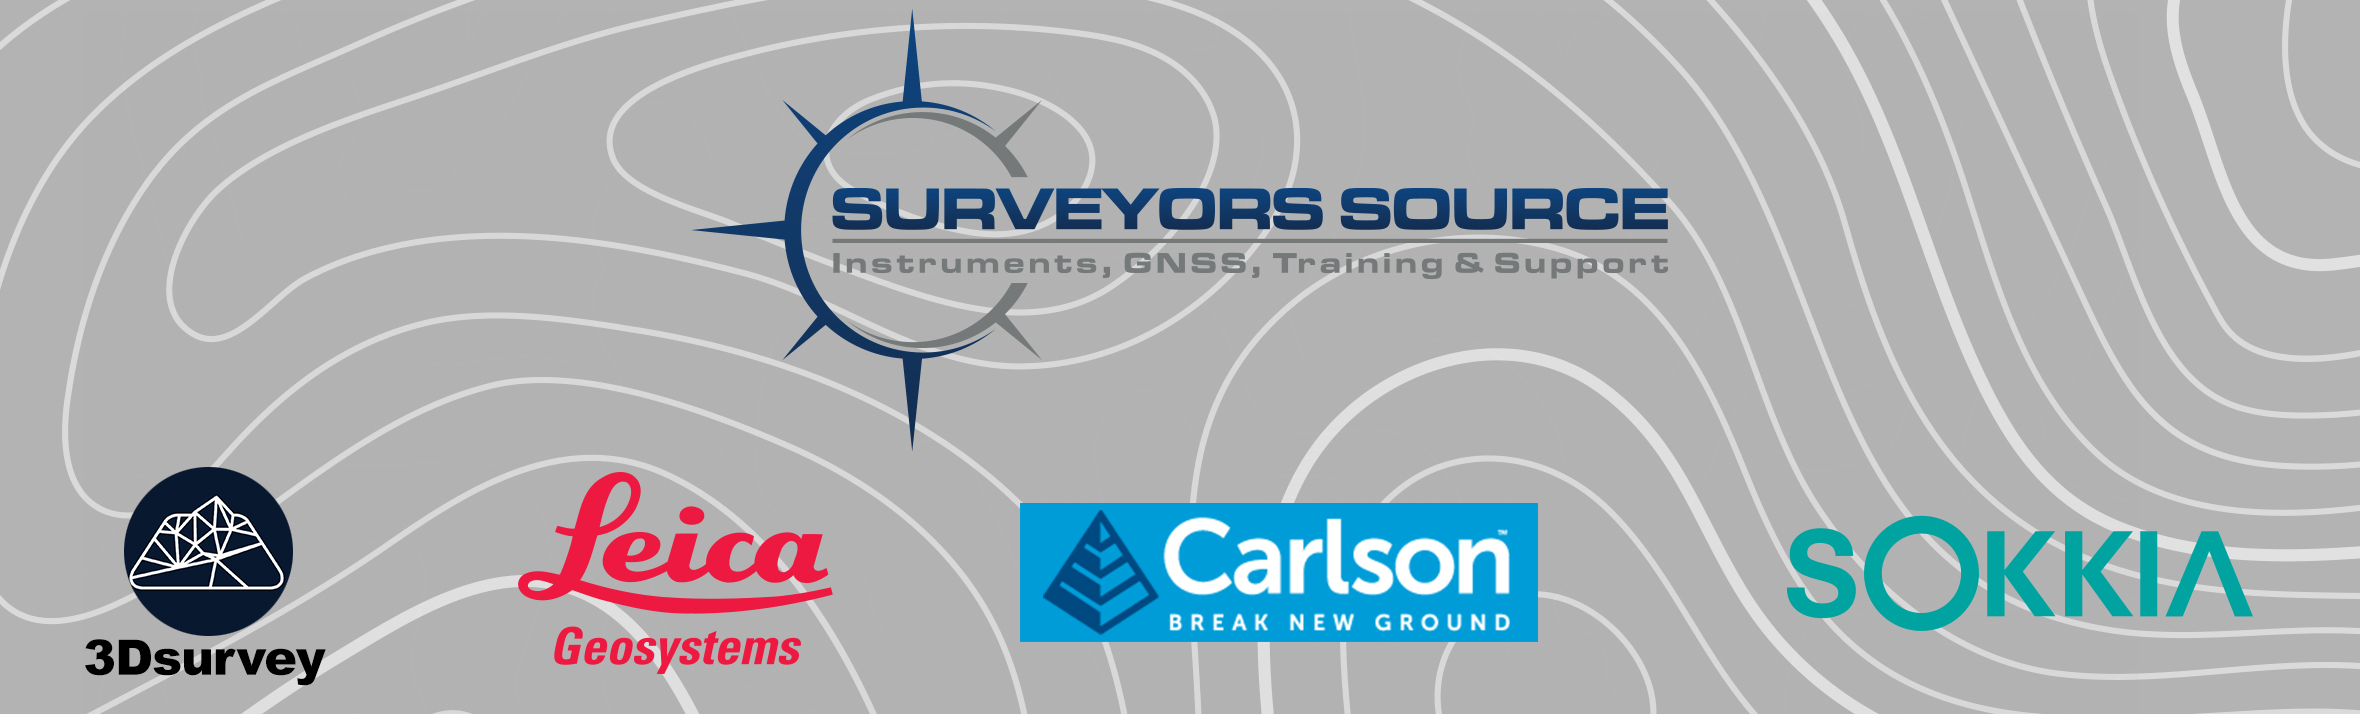 About Surveyors Source